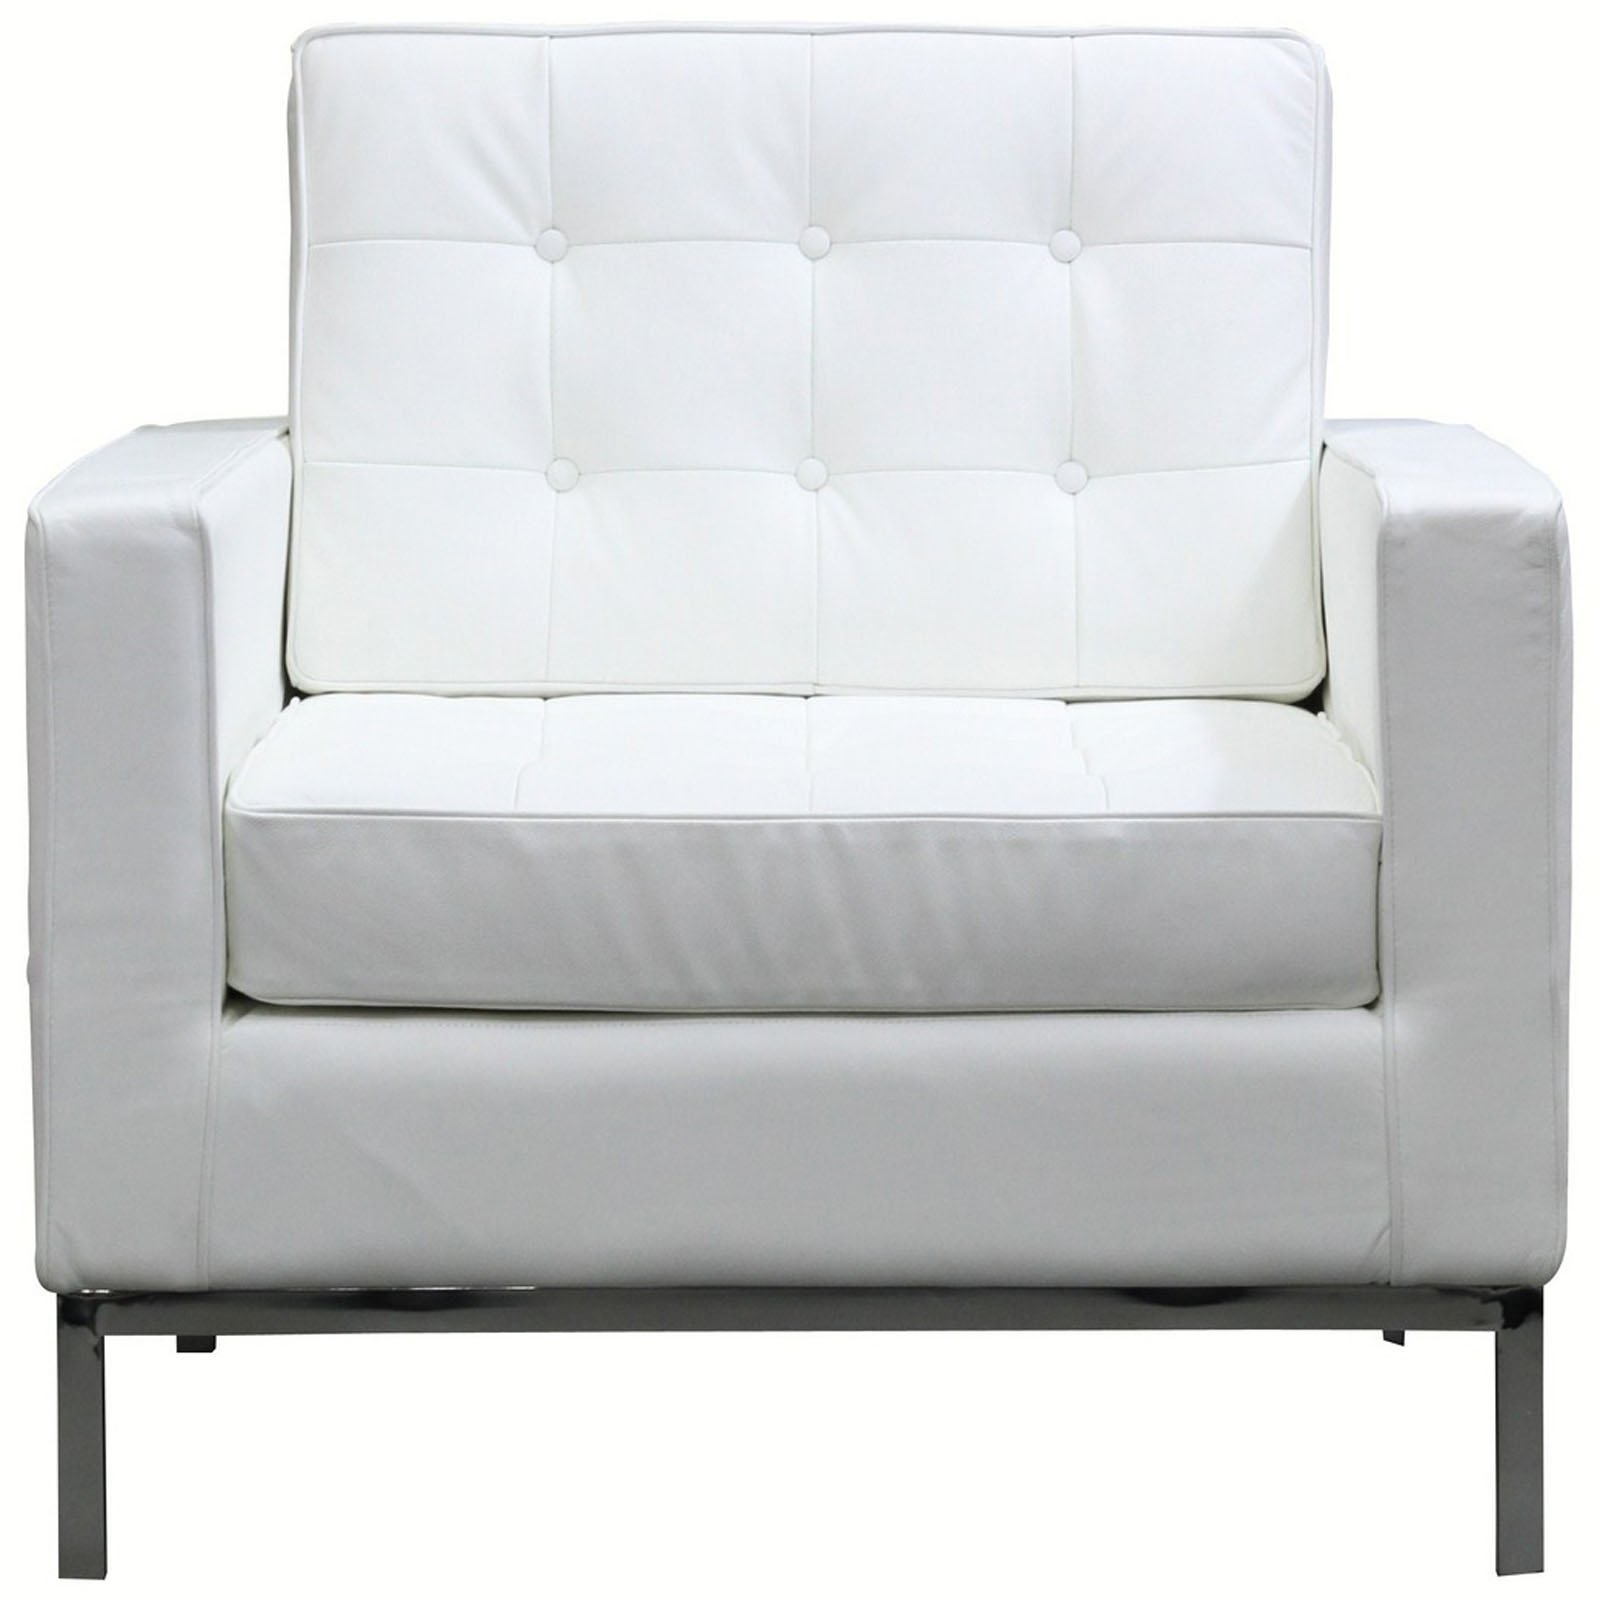 Sohomod With Regard To 2019 Loft Arm Sofa Chairs (View 7 of 20)